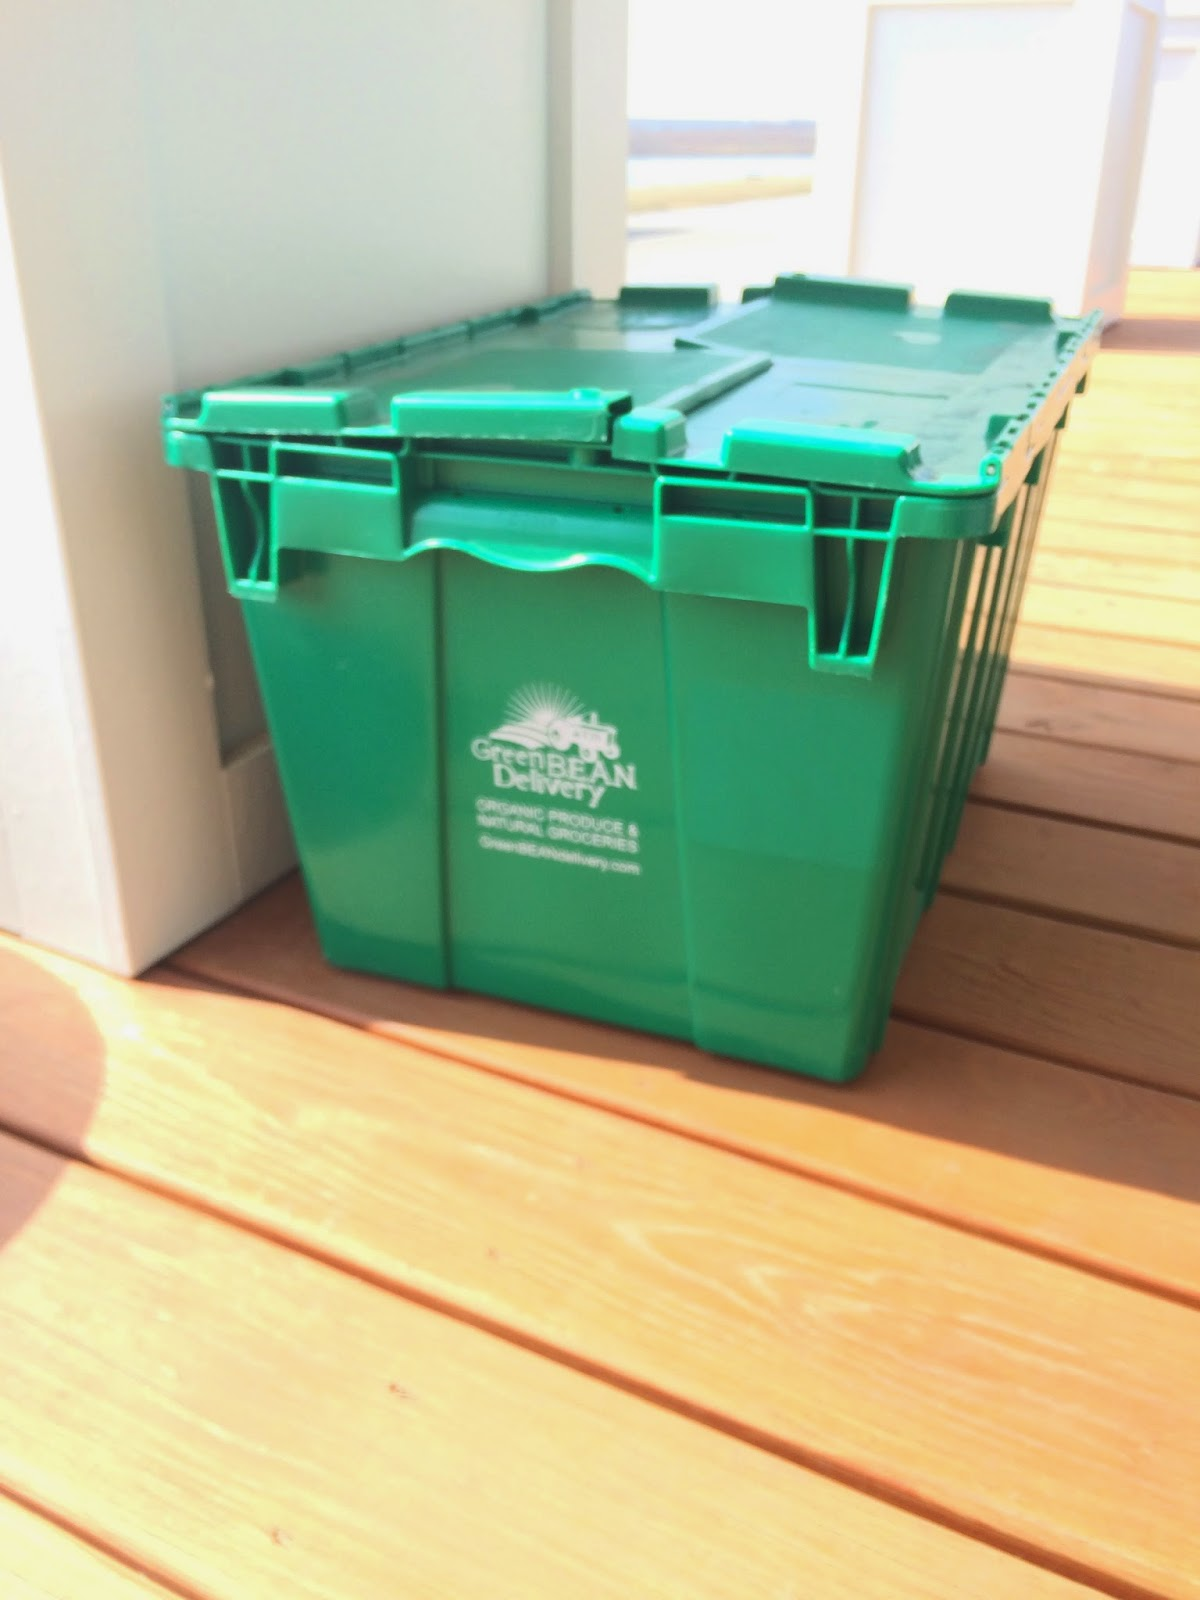 Green Bean Delivery crate